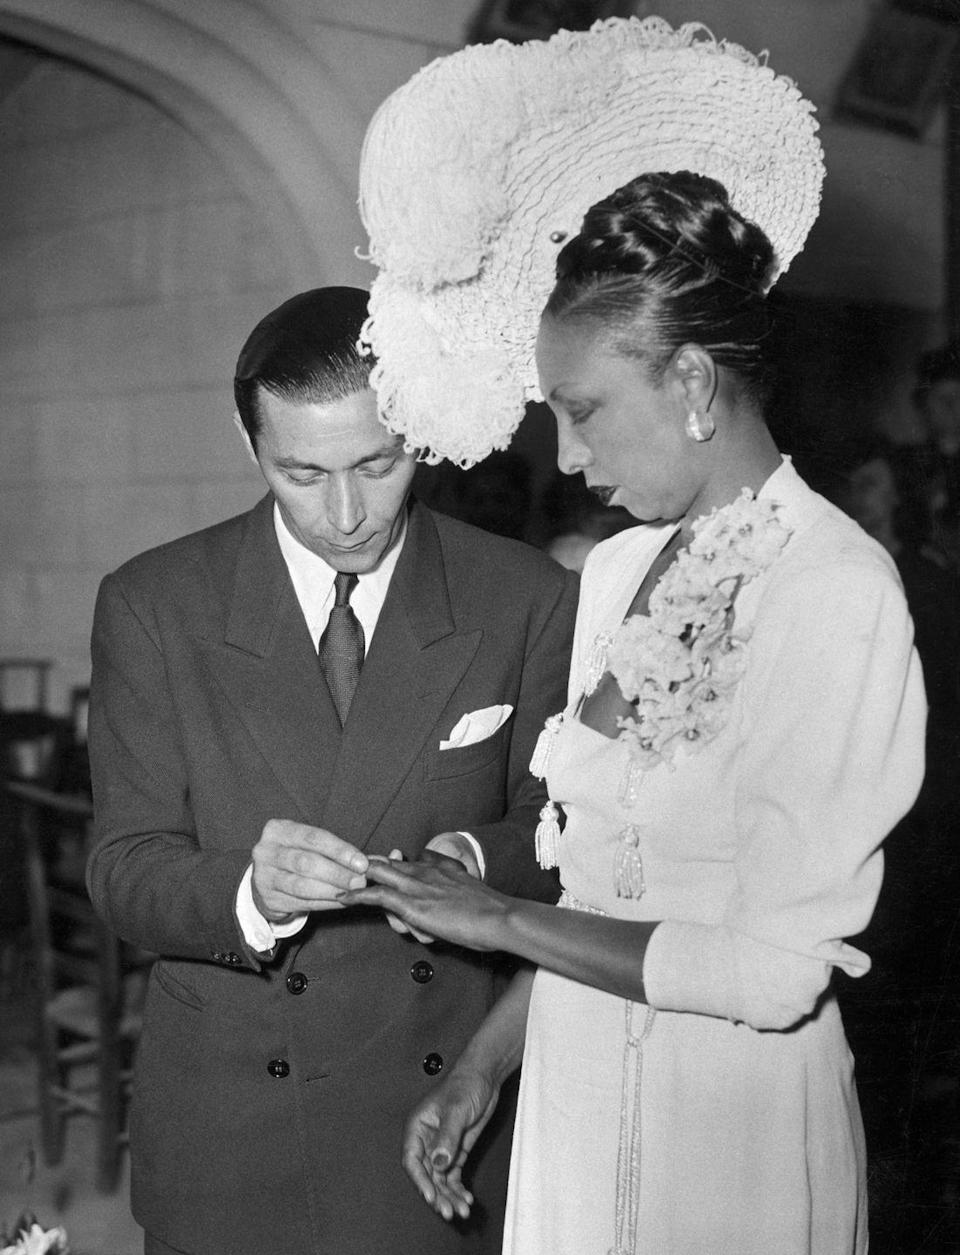 <p>Josephine Baker watches as her soon-to-be husband, Jo Bouillon, places a wedding band on her finger. The couple married in 1947 in the chapel at Baker's French home, Château des Milandes. </p>